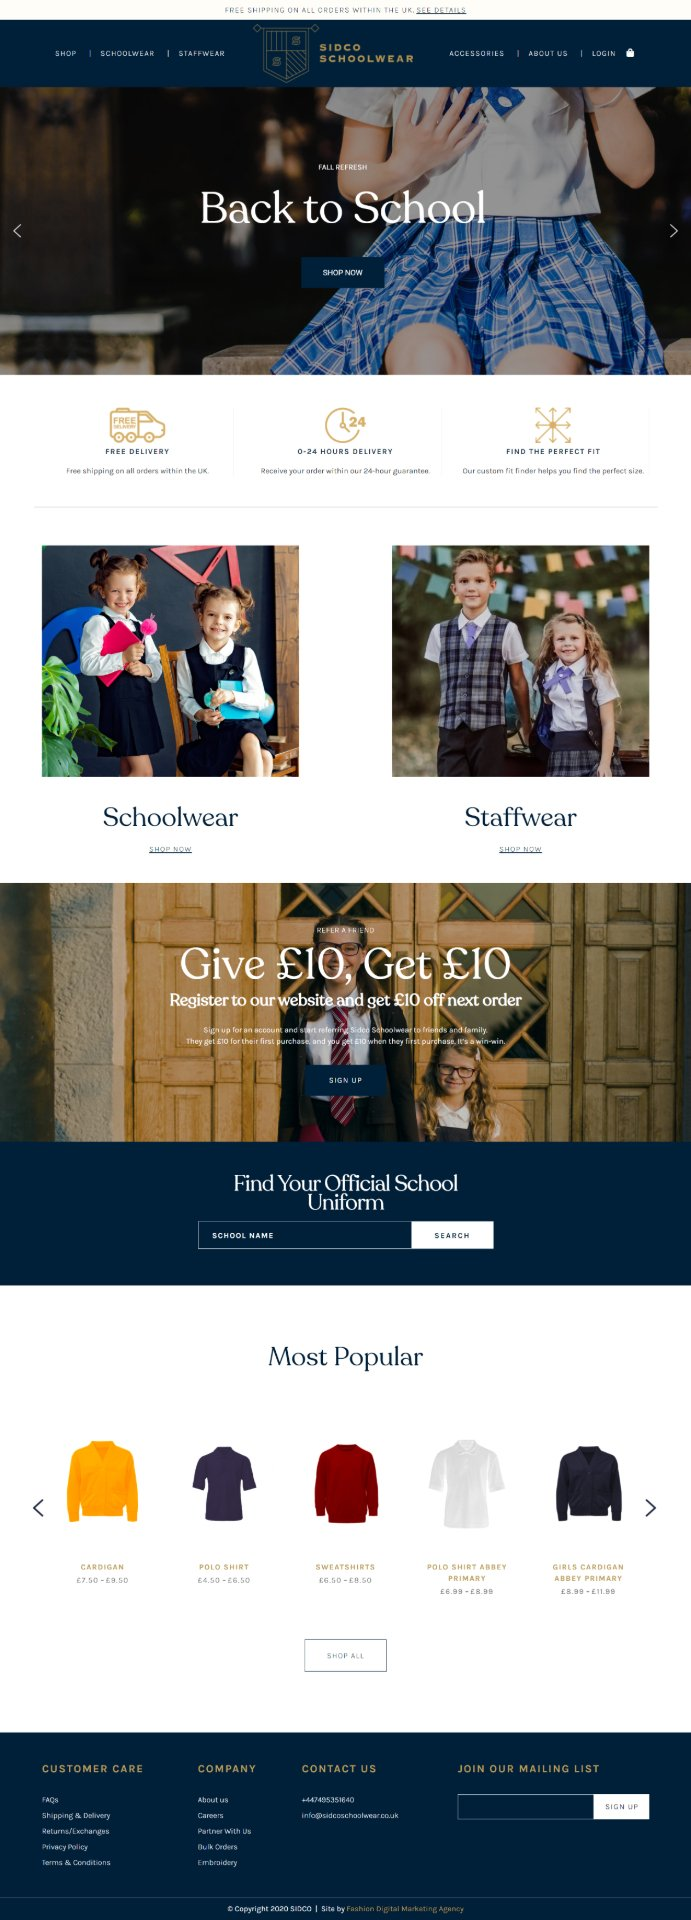 kids-schoolwear-fashion-brand